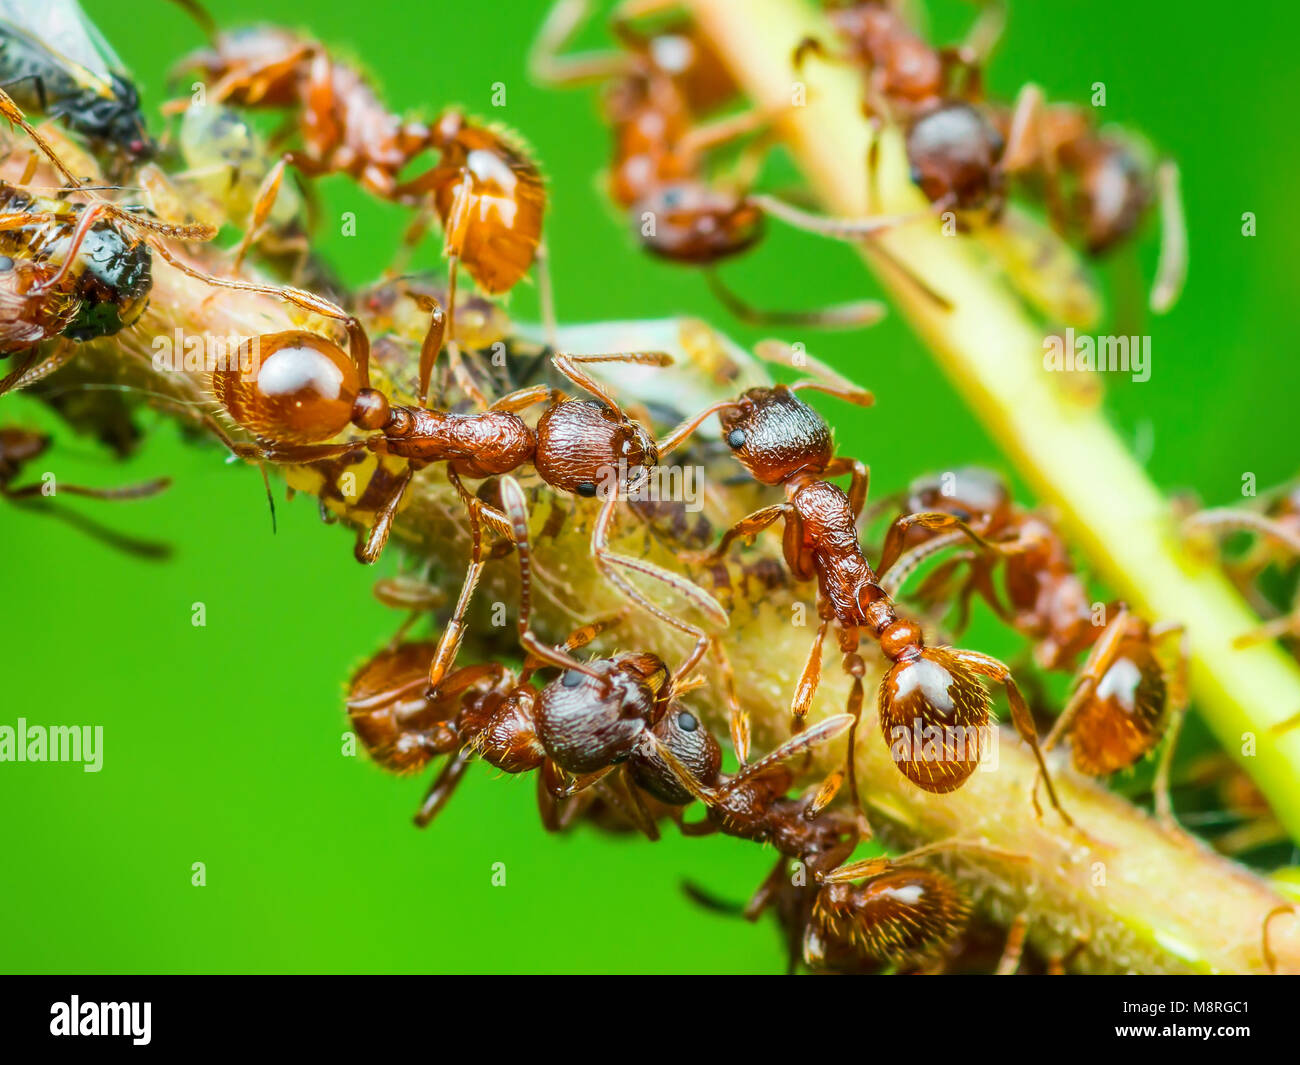 Red Ant and Aphid Colony on Twig Stock Photo